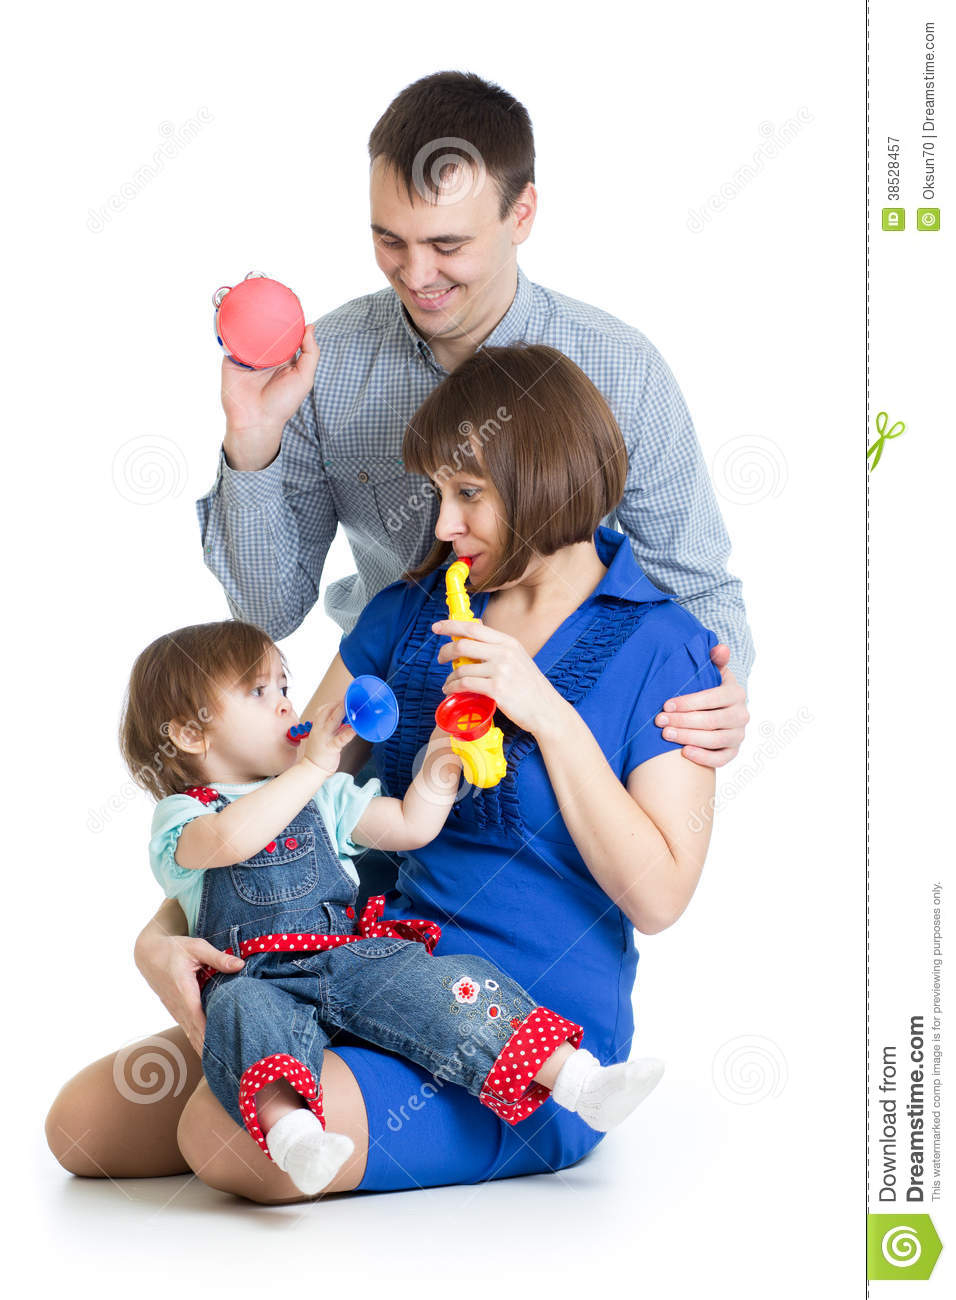 Toys For Dads : Mother father and baby girl play musical toys stock image